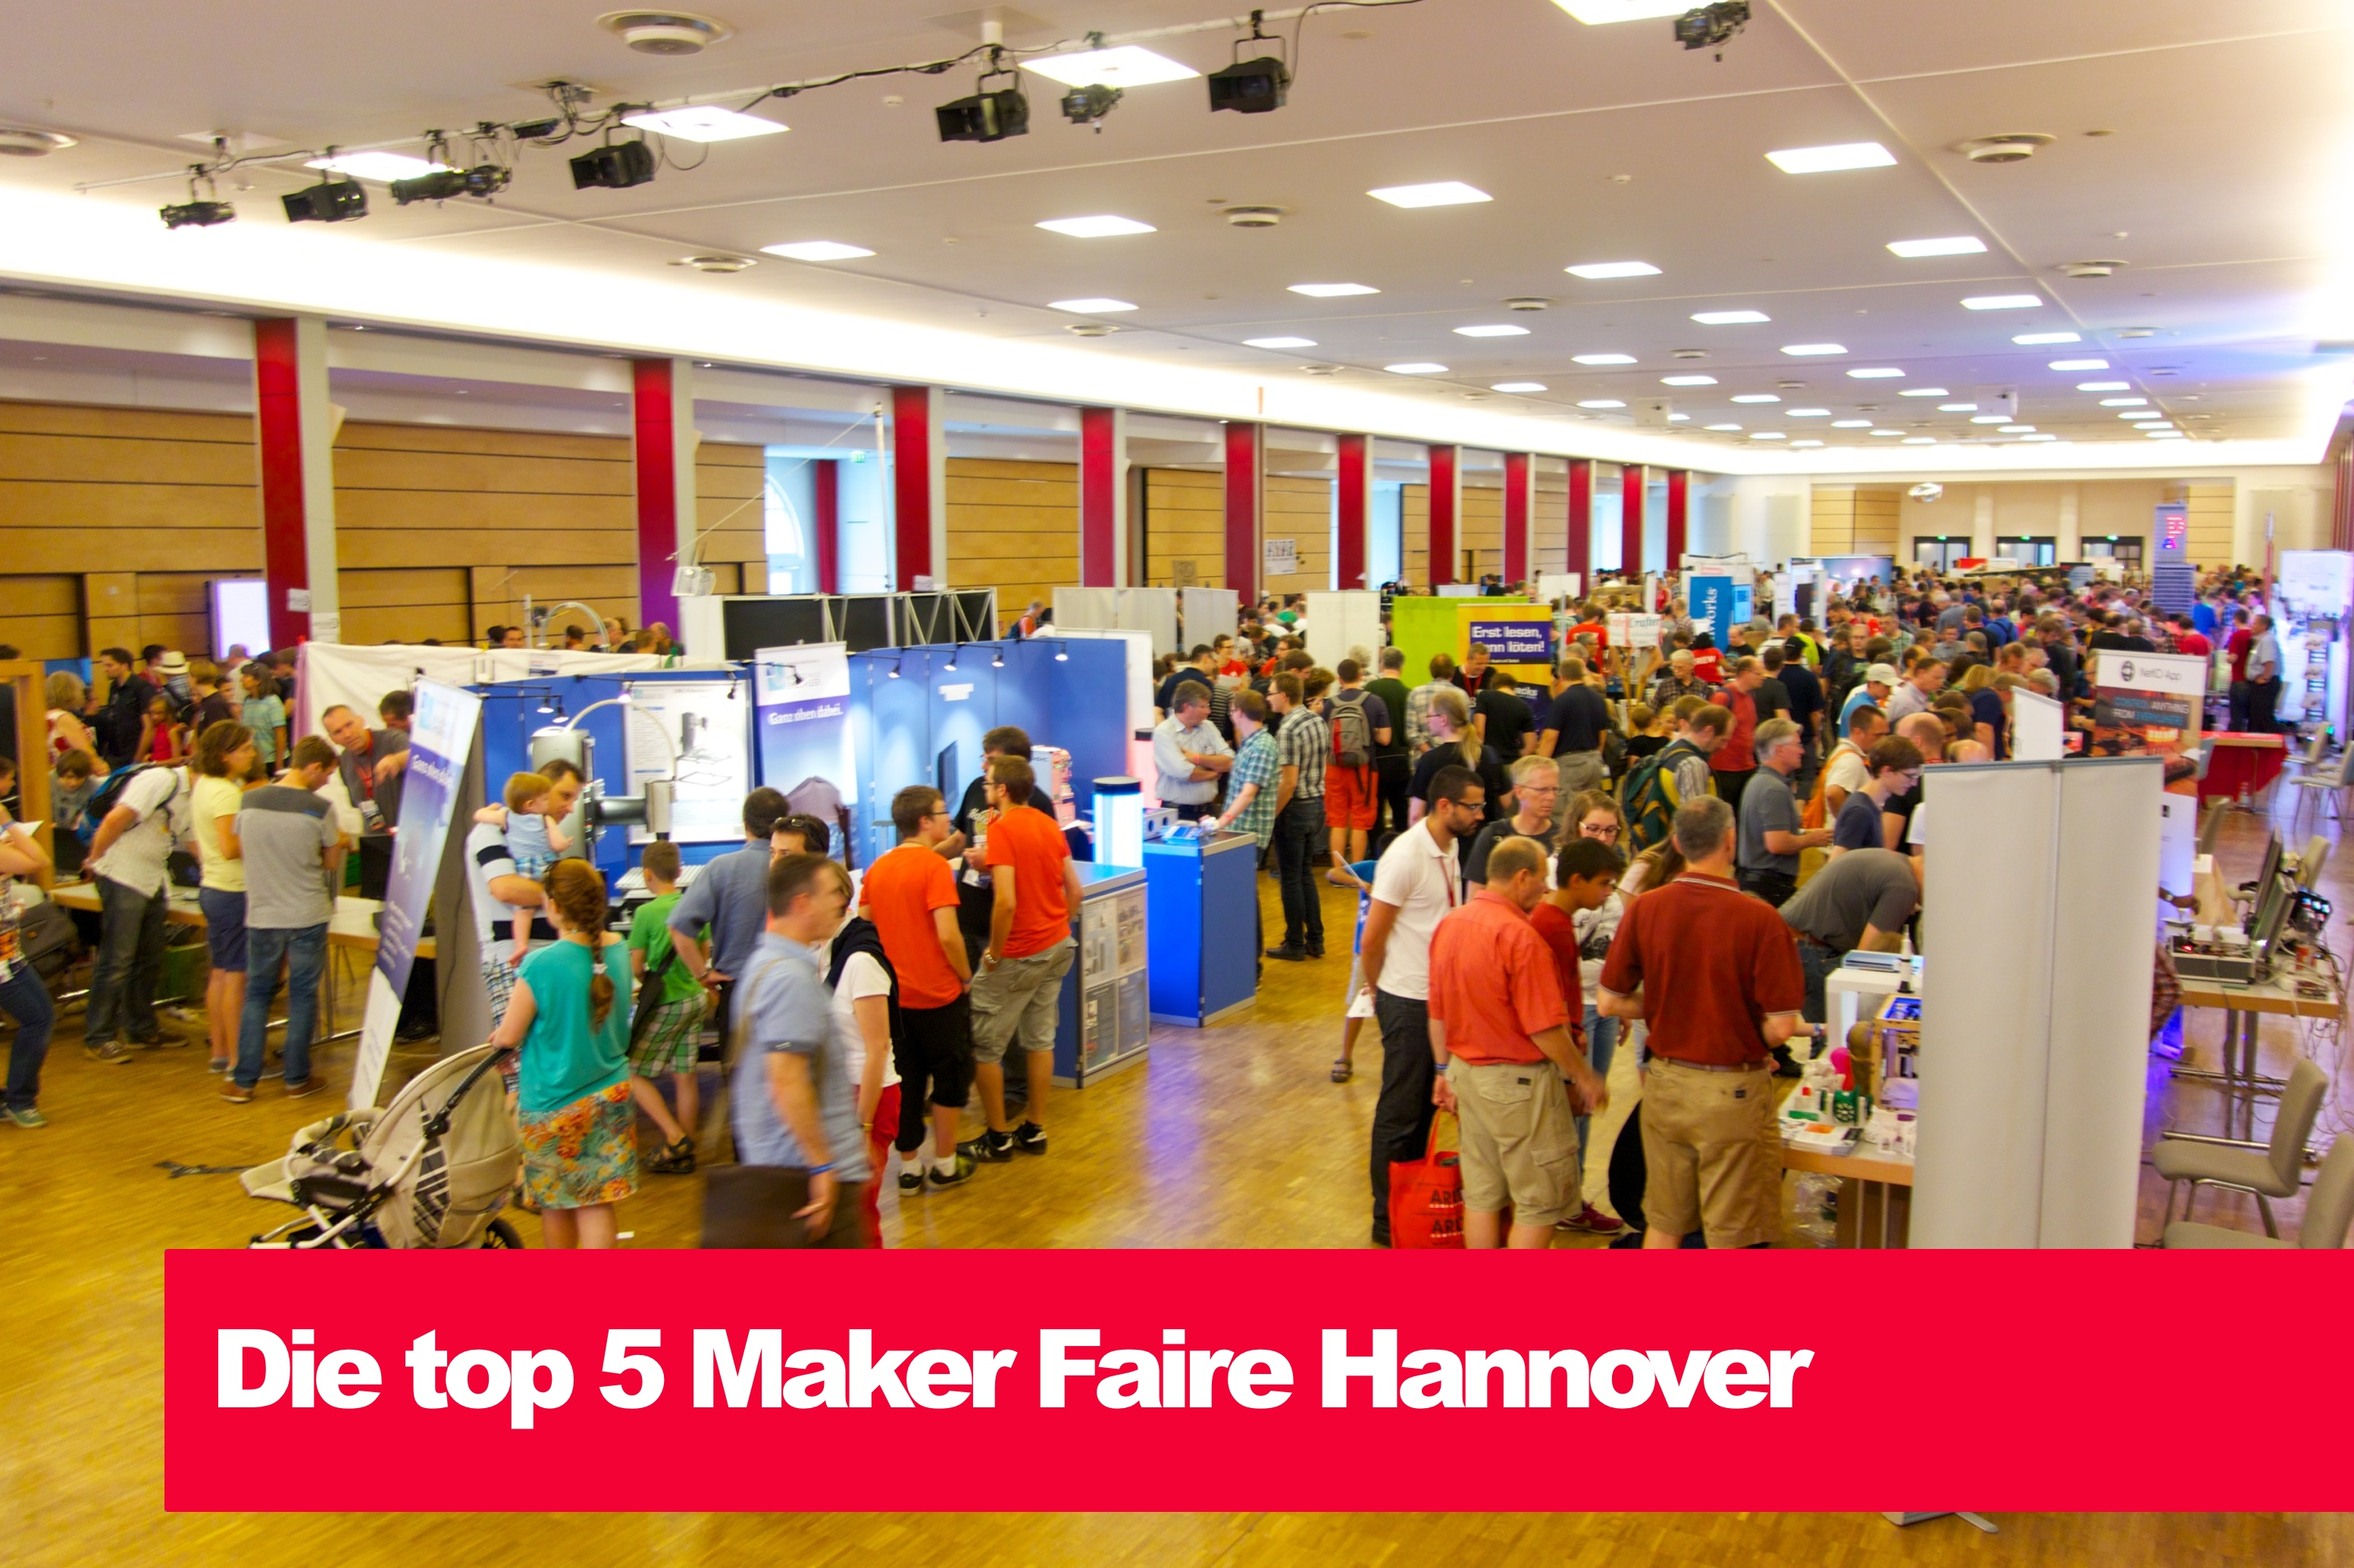 Die top 5 Maker Faire Hannover